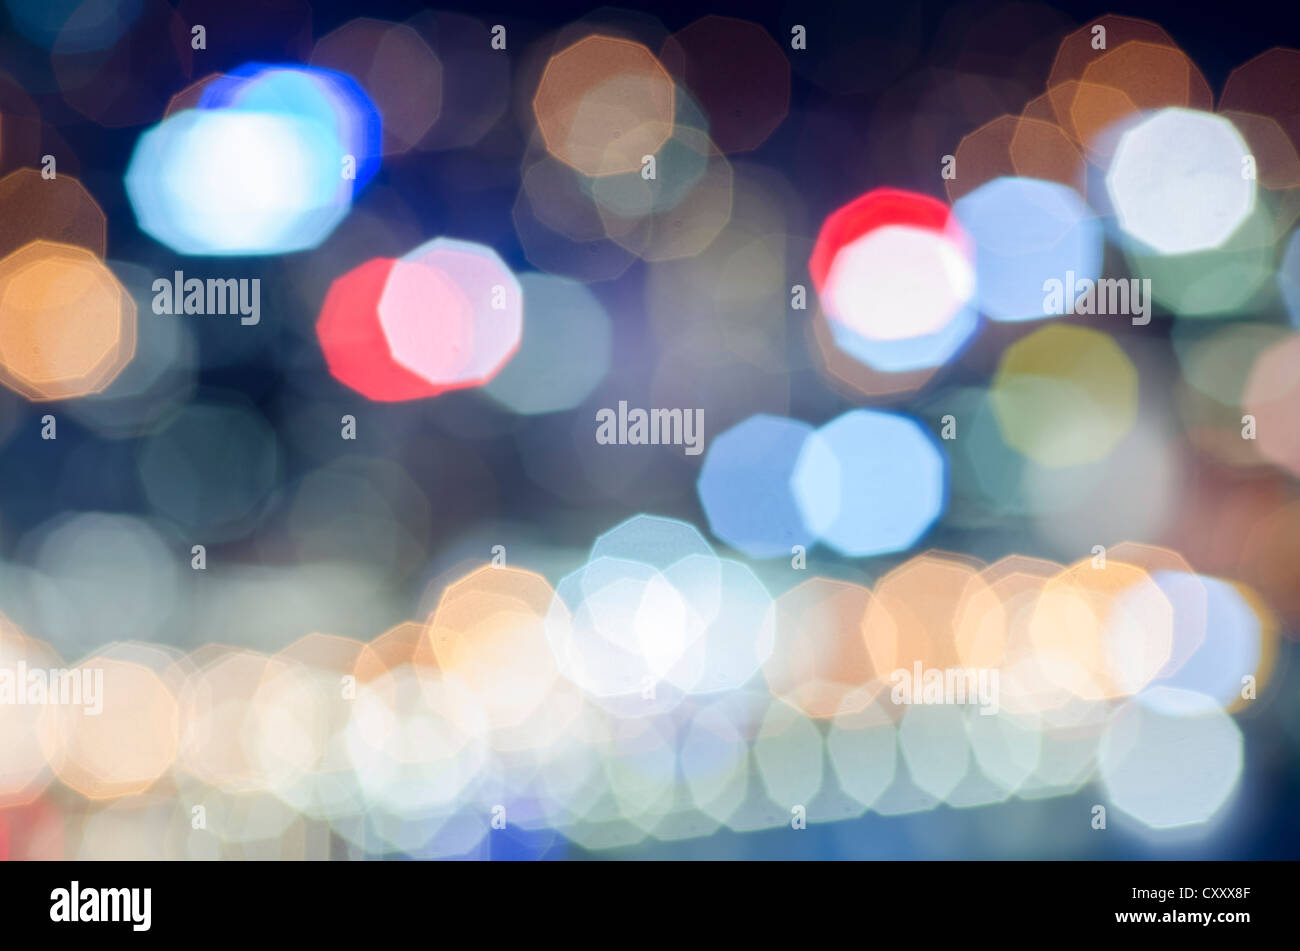 Coloured lights as fuzzy, abstract points of light with coloured lens flare - Stock Image